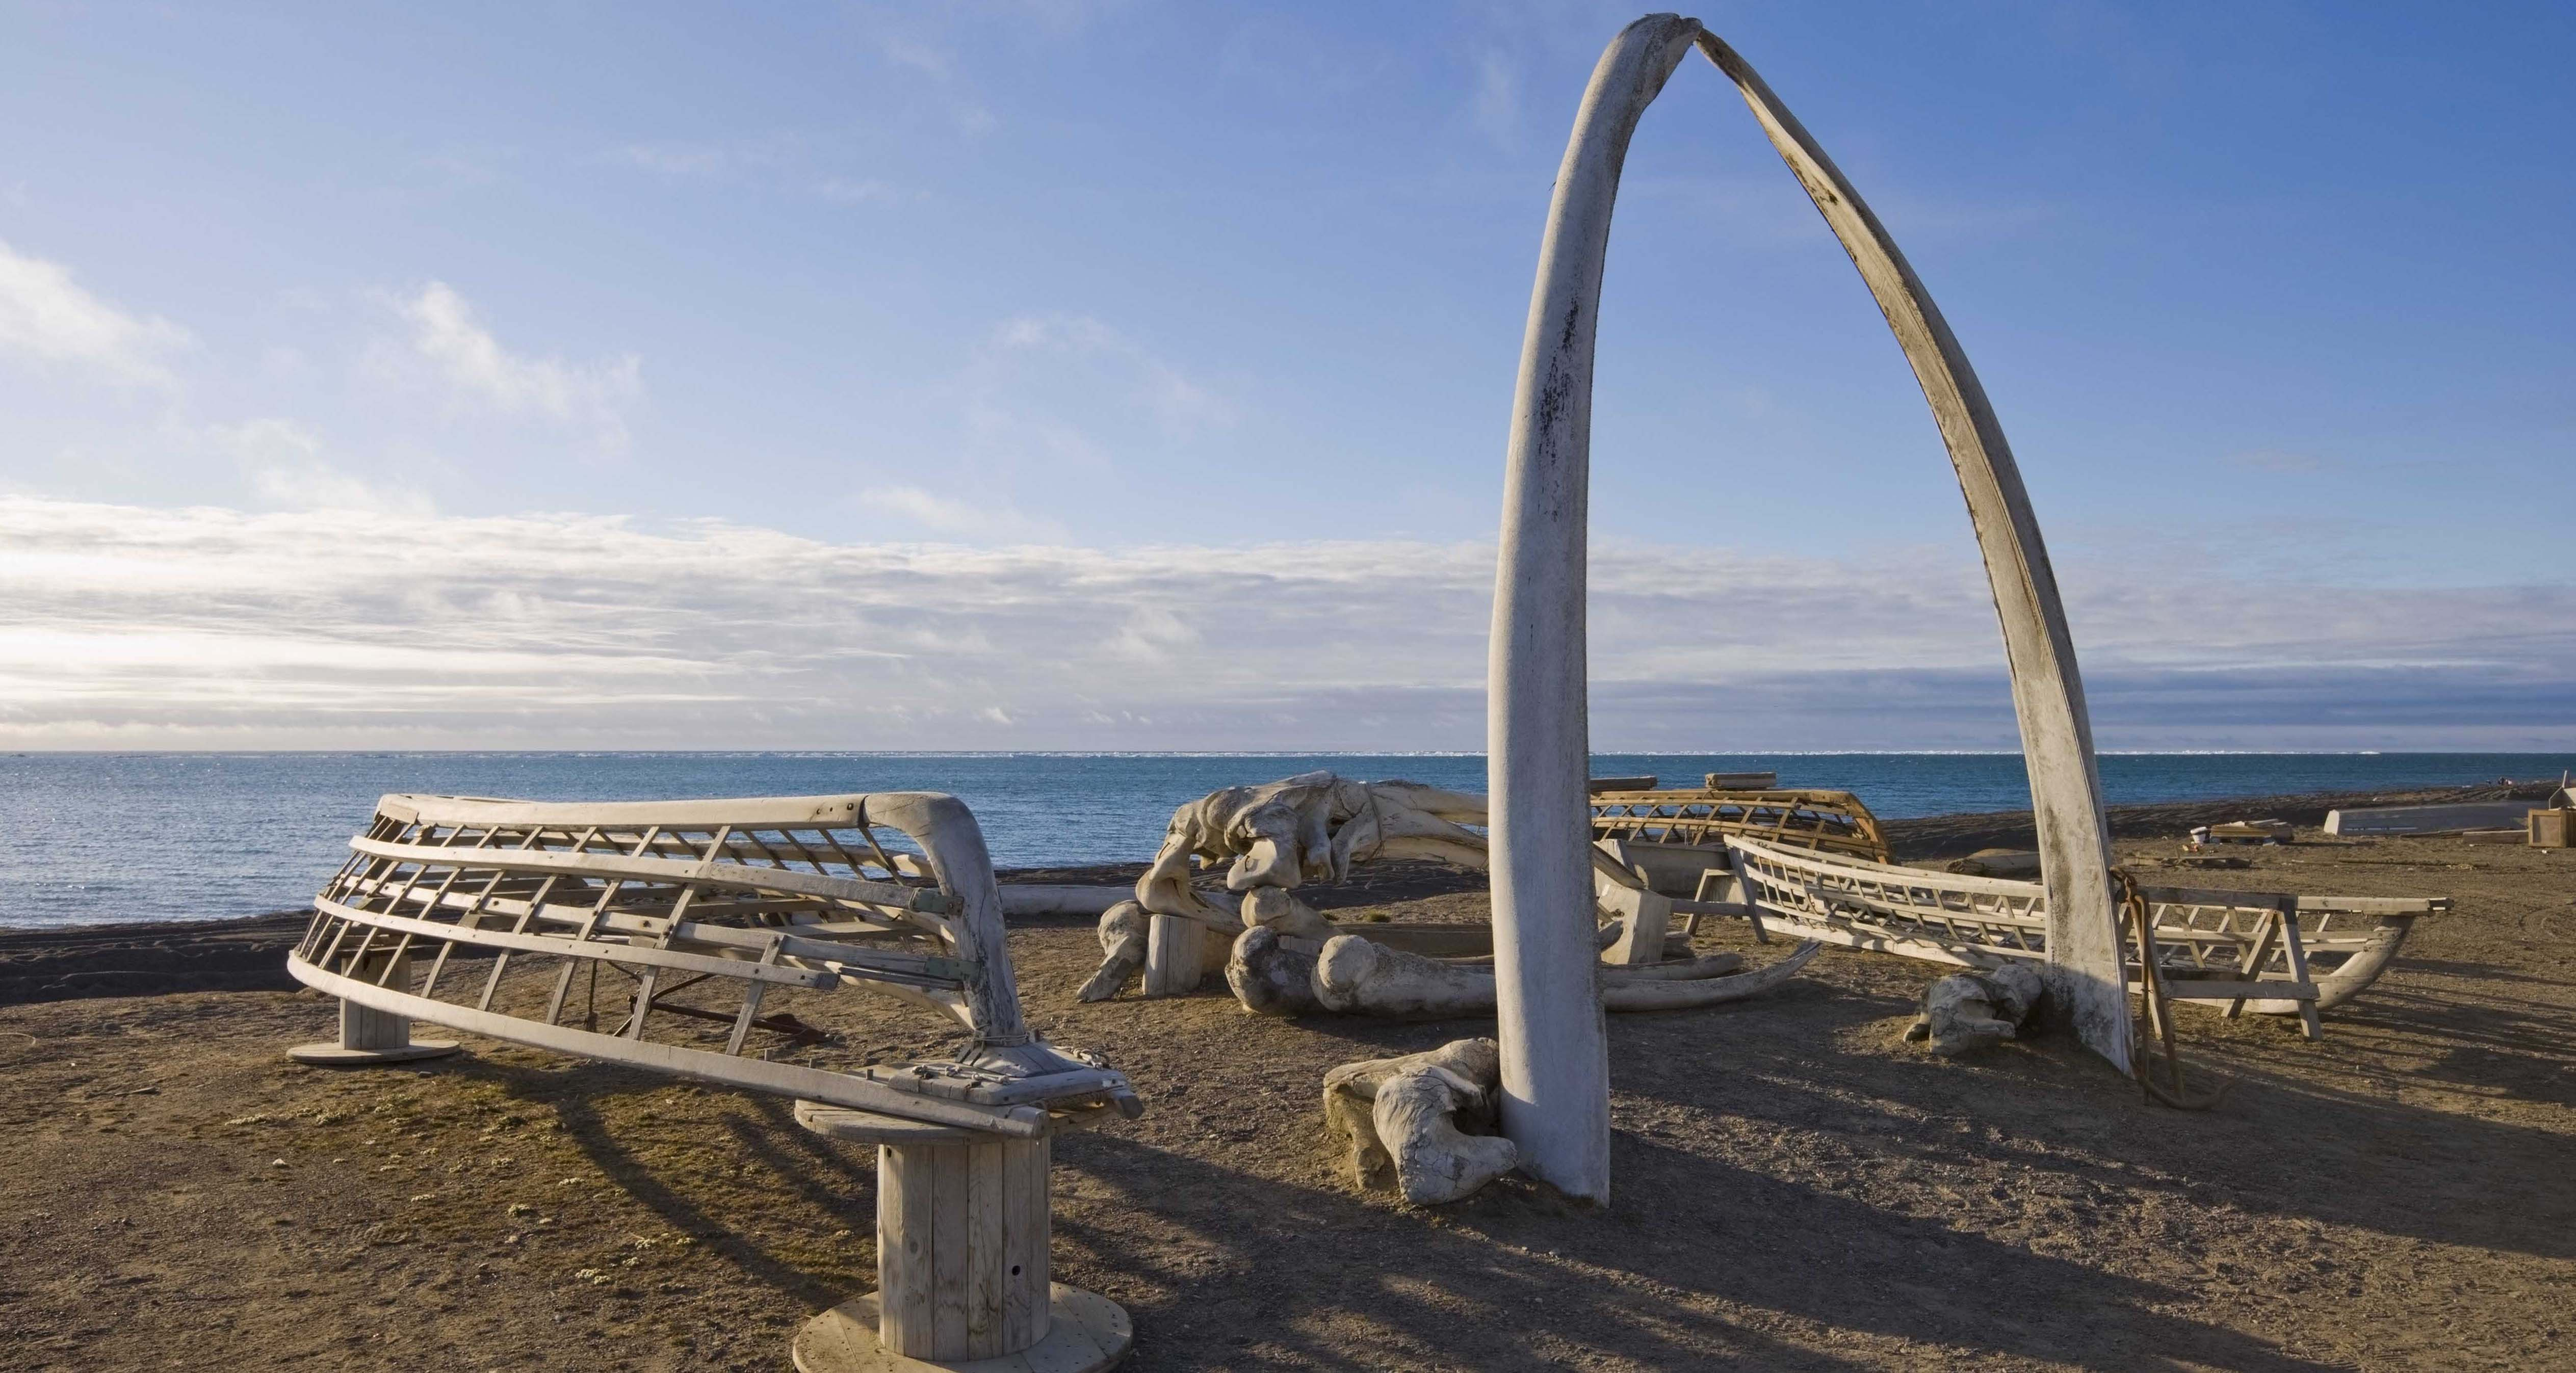 Beach of northernmost community in the United States, Utqiagvik